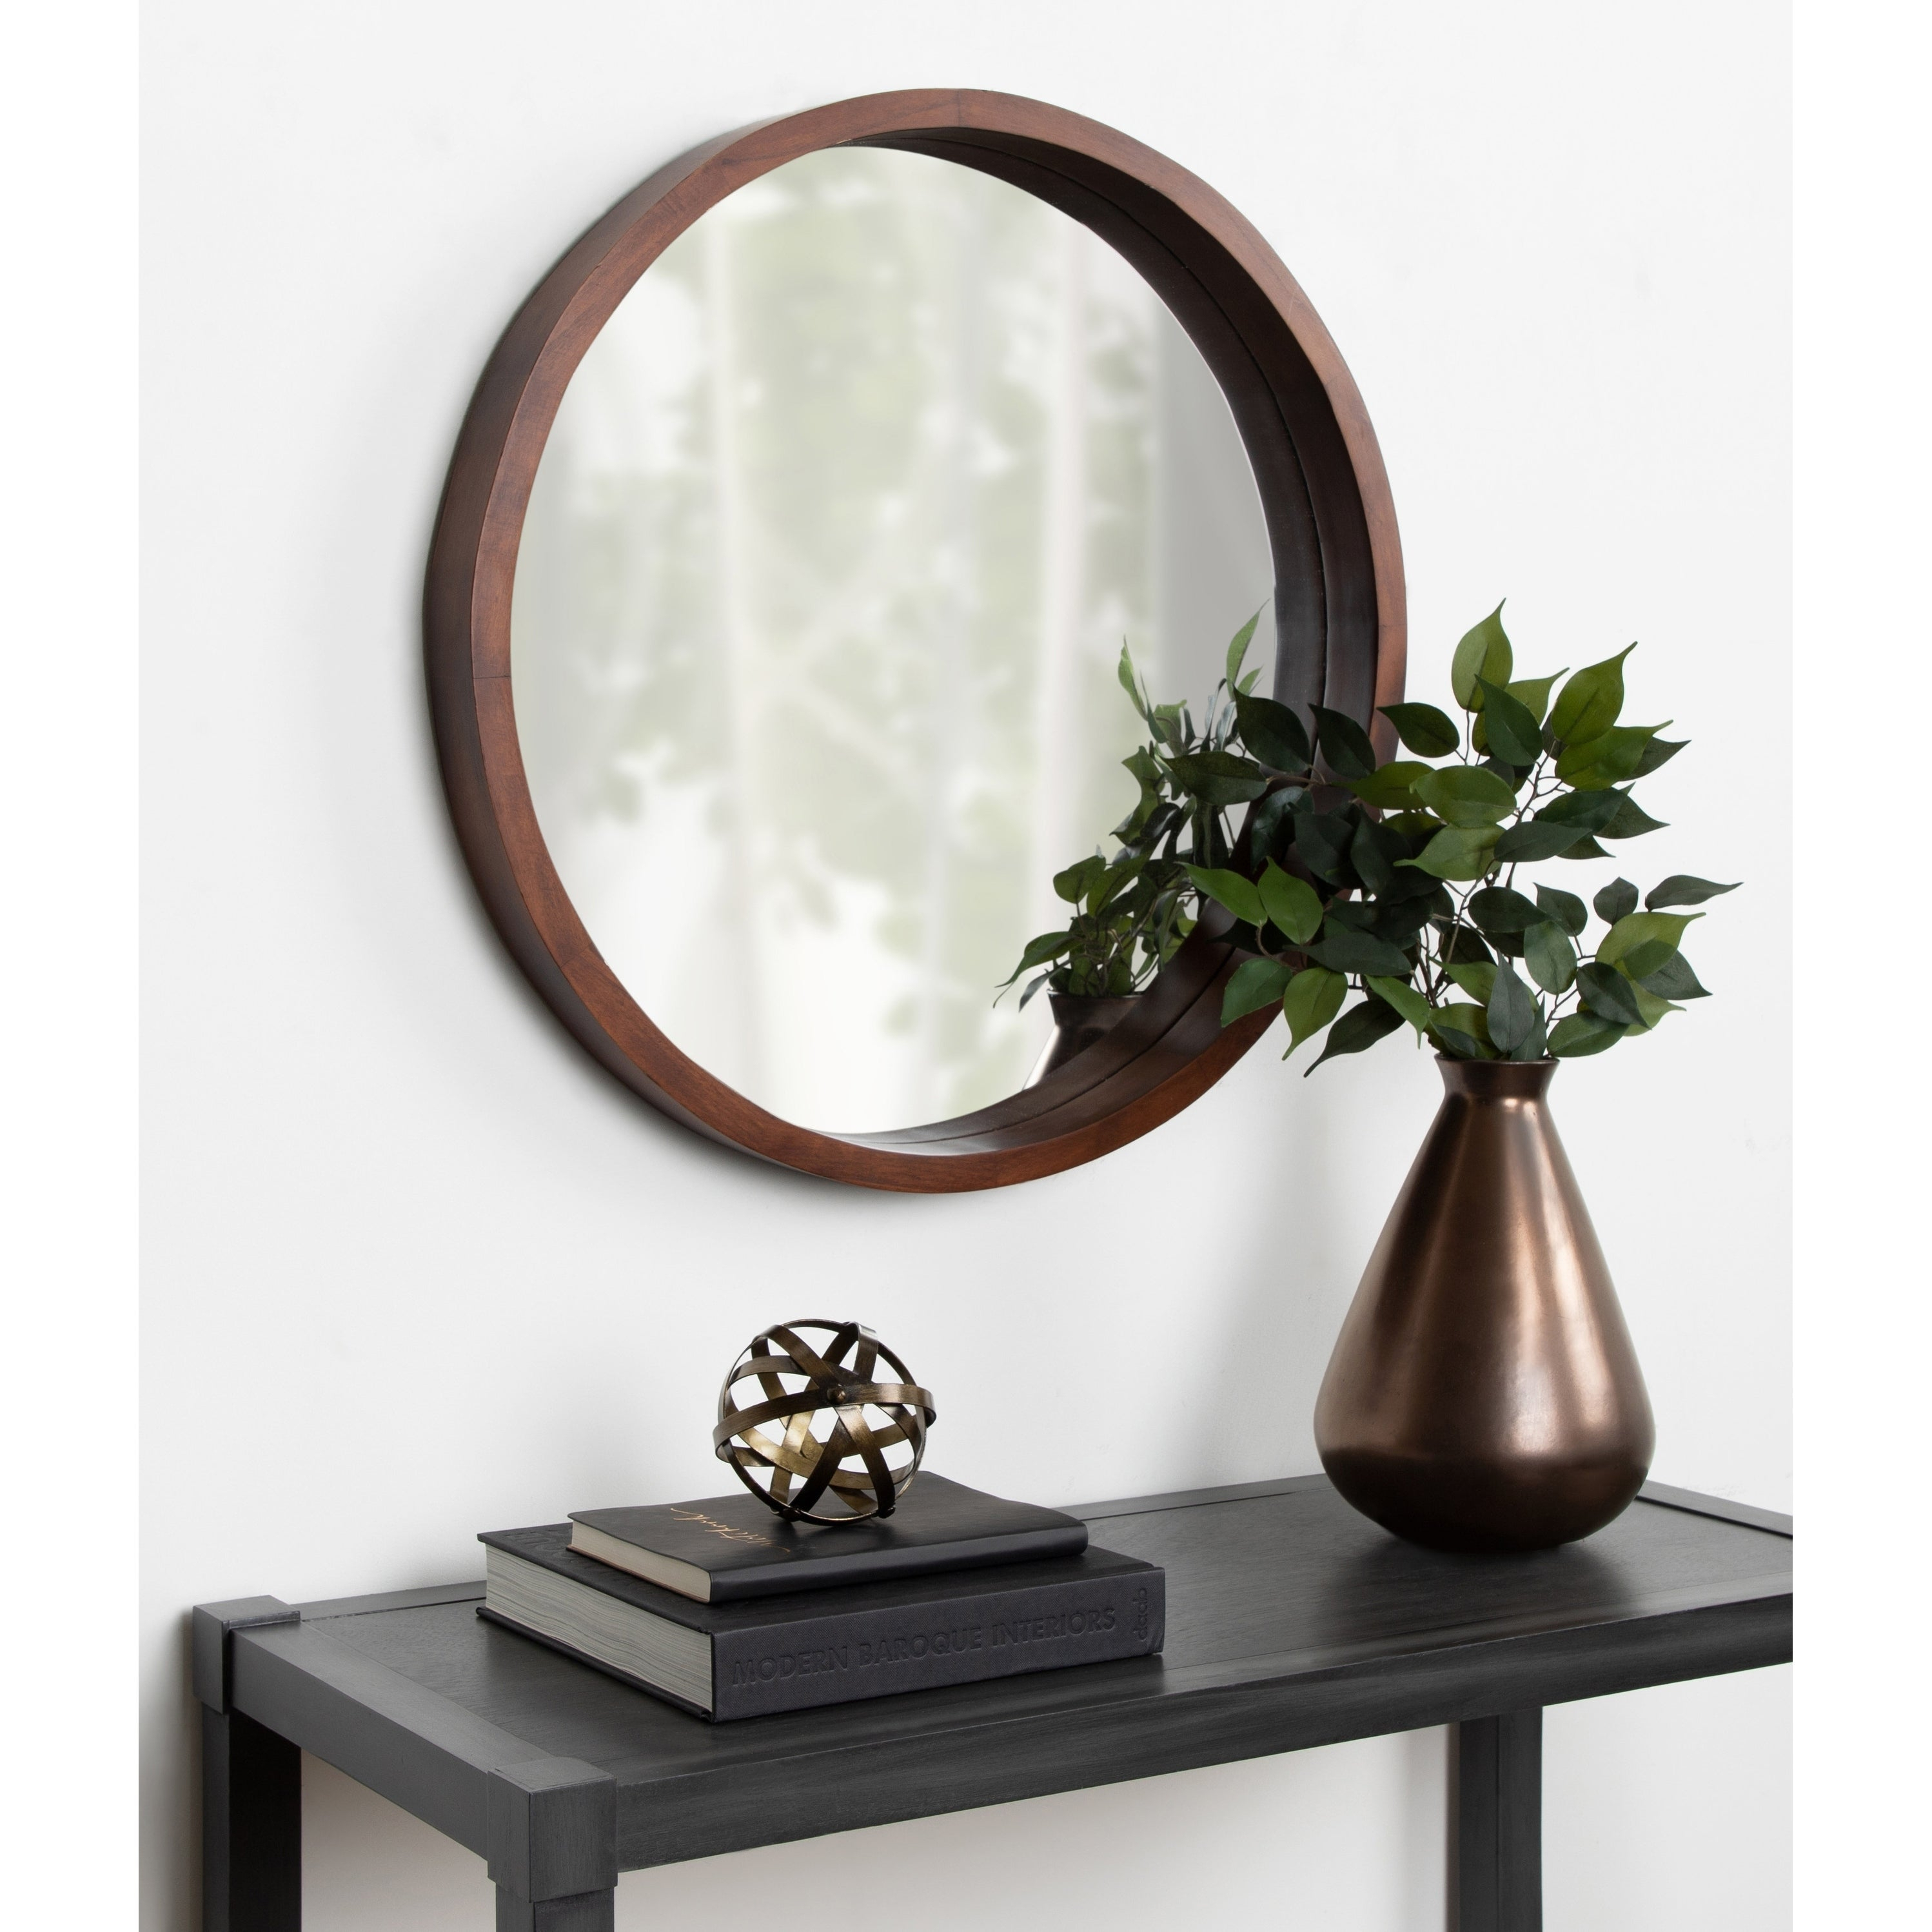 Accent Mirrors | Shop Online At Overstock With Regard To Berinhard Accent Mirrors (Image 3 of 20)